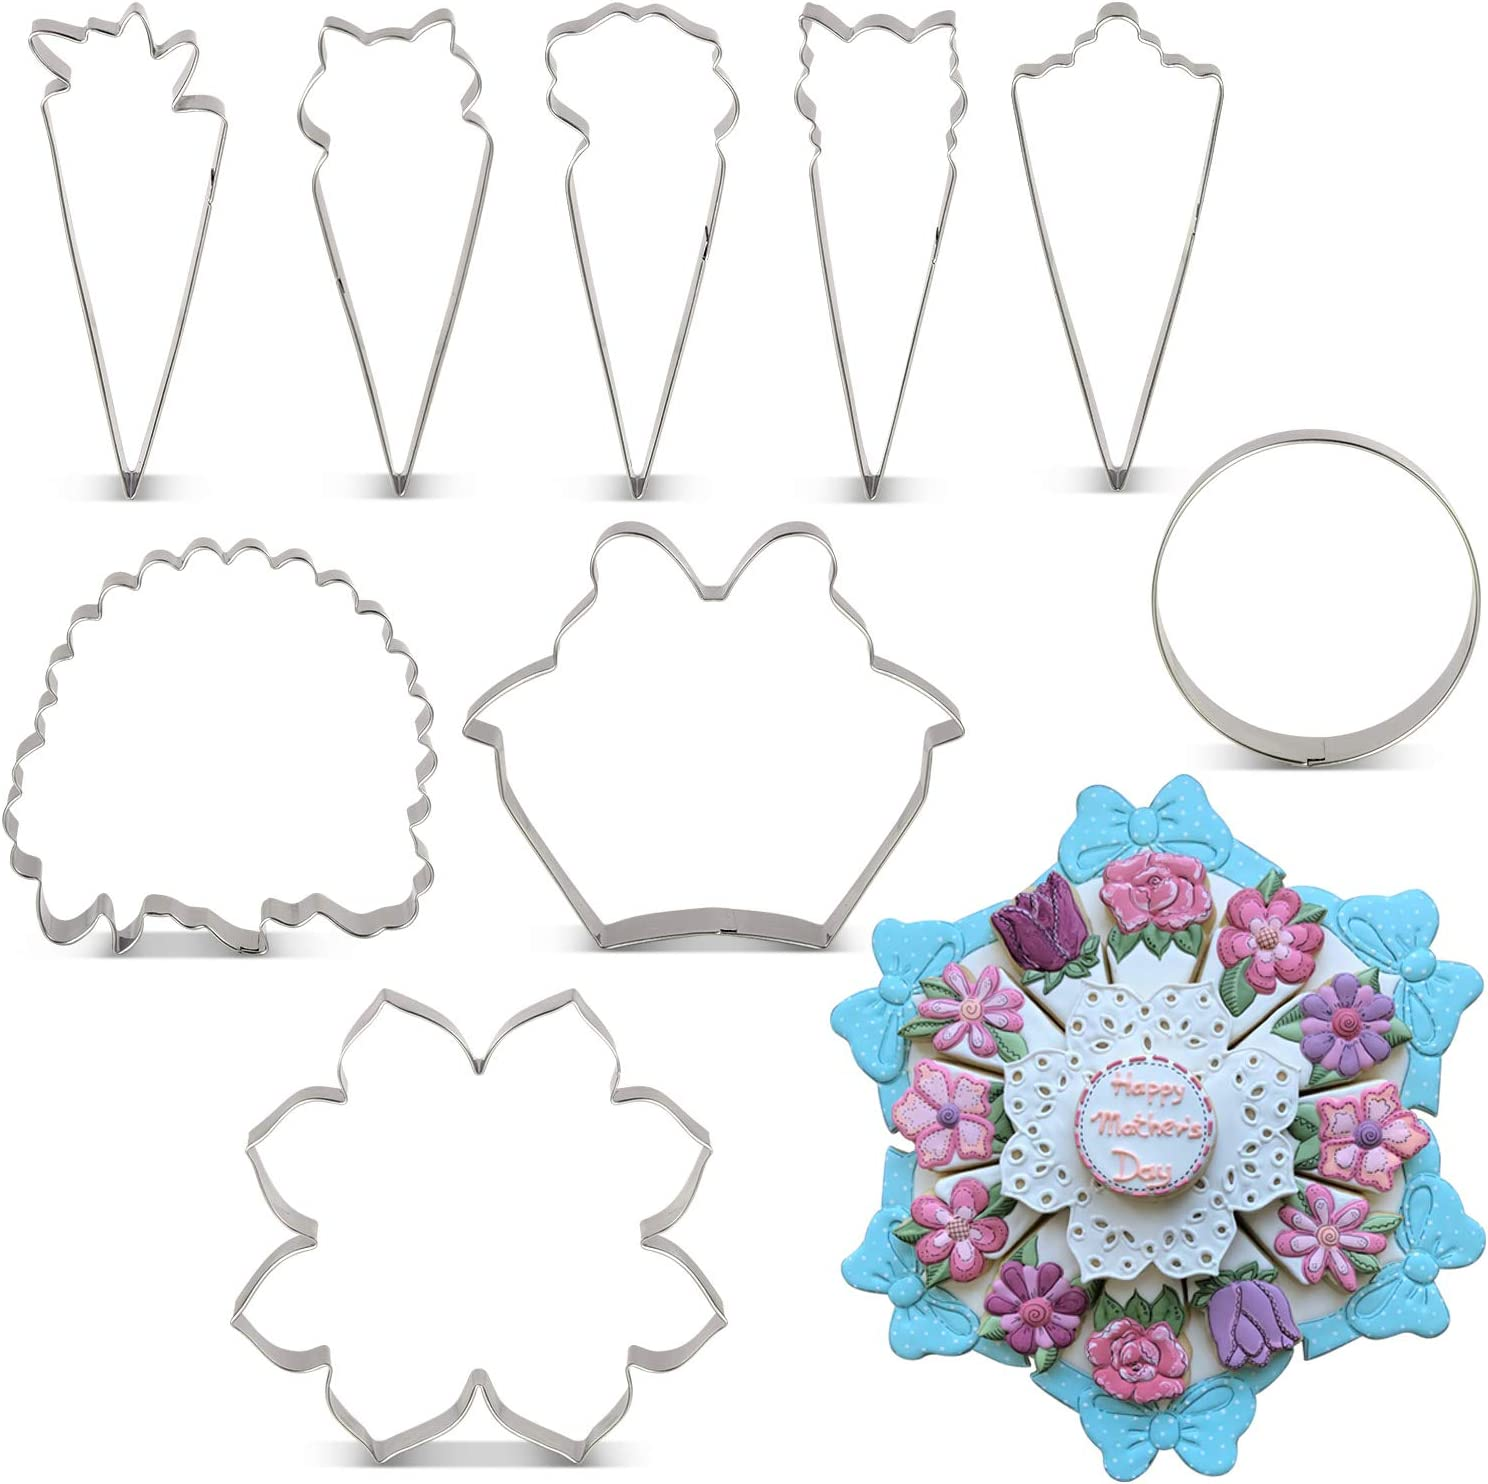 KENIAO Flower Floral Plate Cookie Cutter Set for Mother's Day - By Janka J. Cookies - 9 Piece - Stainless Steel